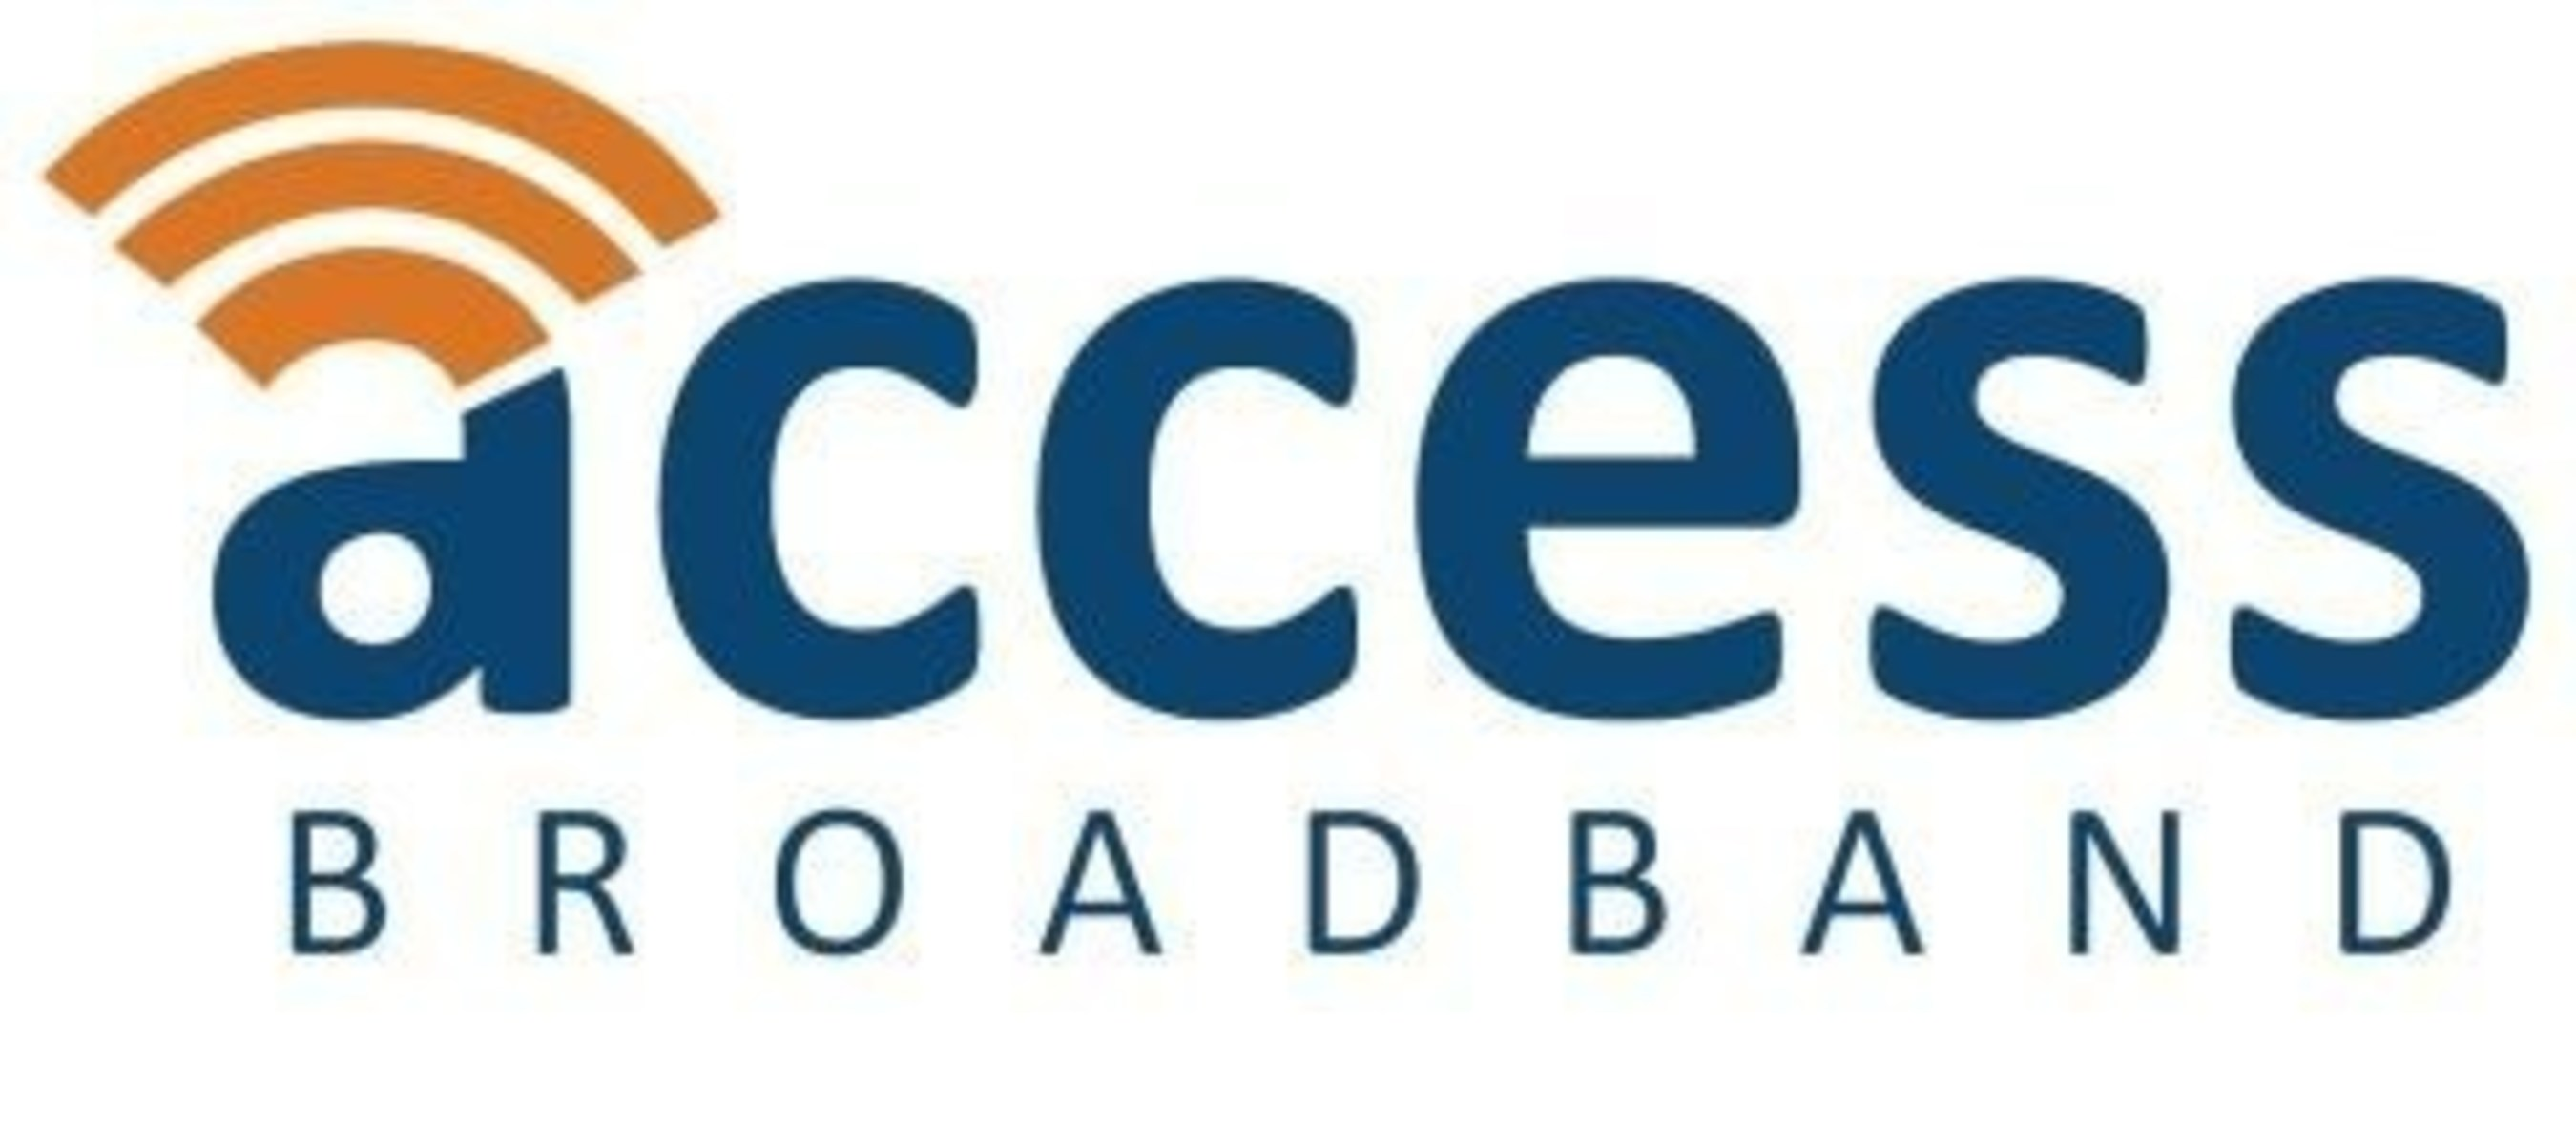 WOWaccess Changing Name to Access Broadband to Avoid Confusion